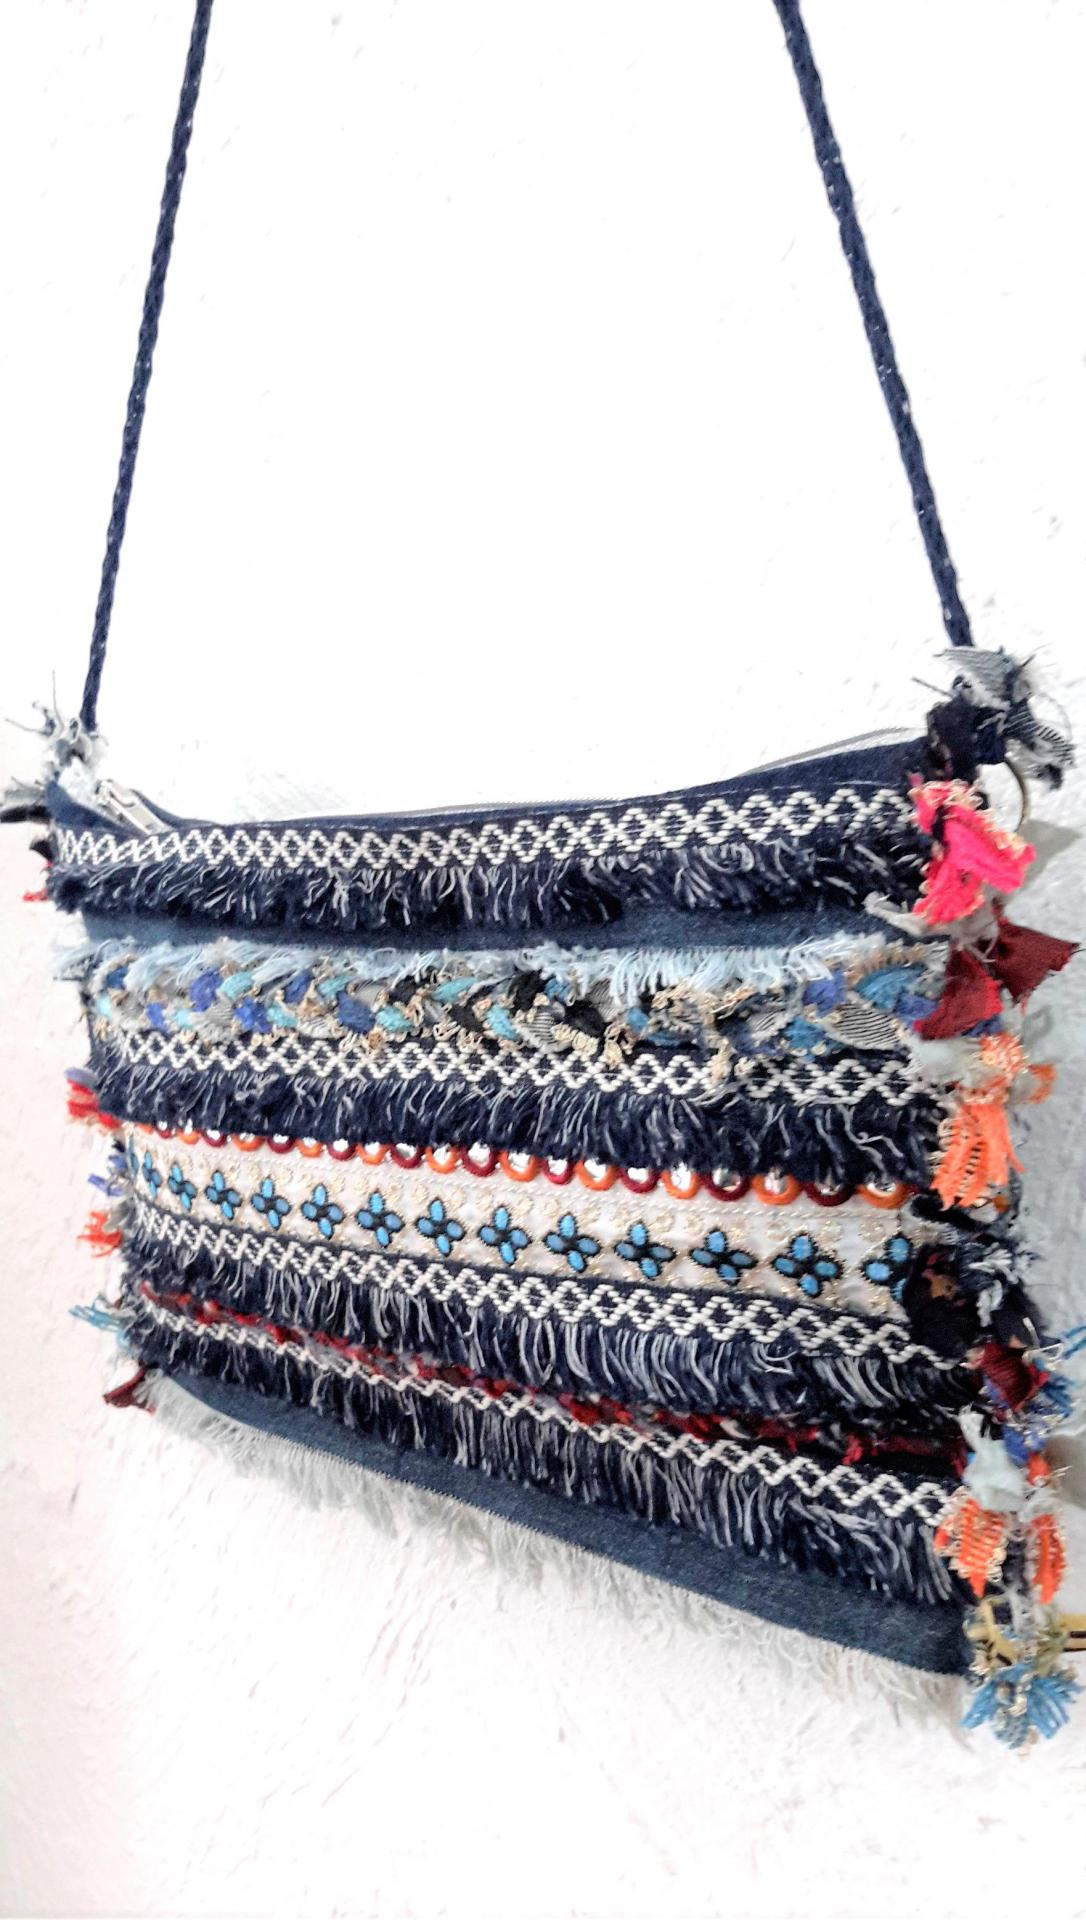 Sac jeans bandouliere 1